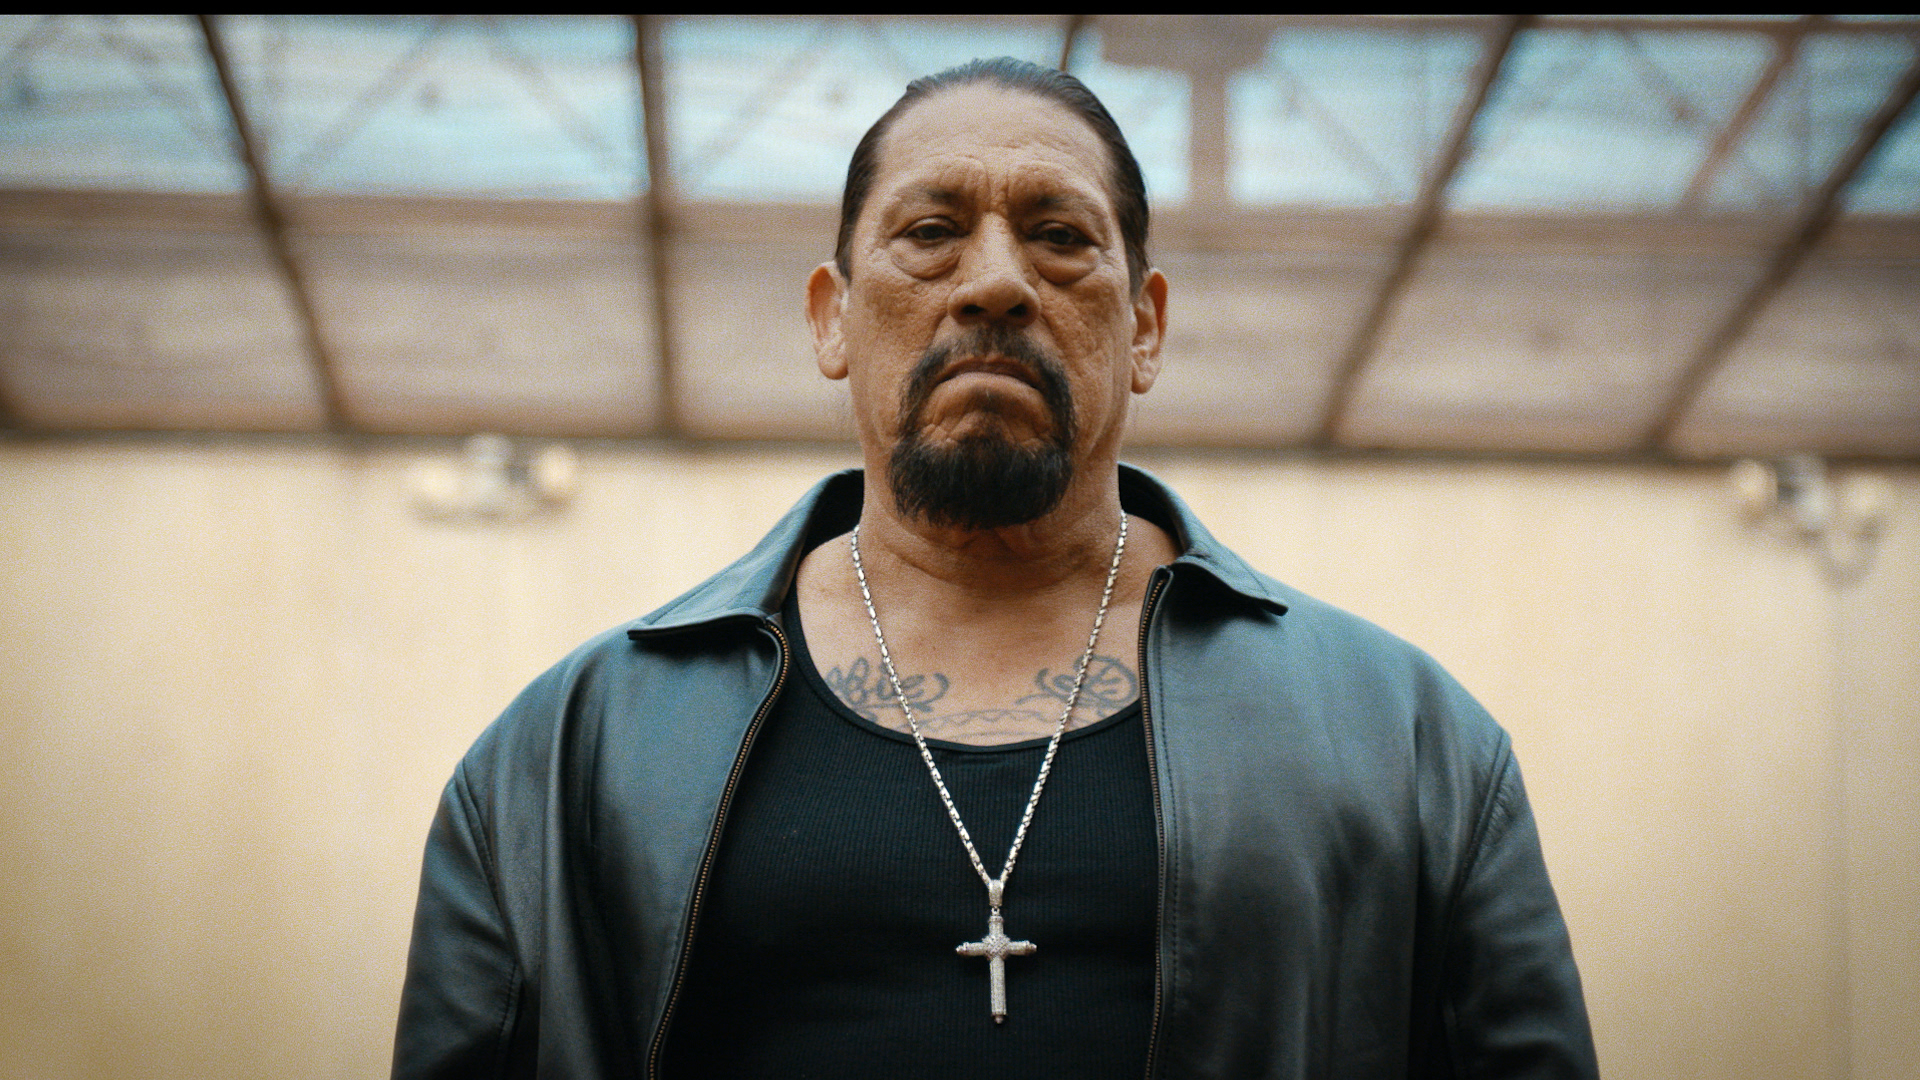 Danny Trejo's Real Life Proves As Riveting As Any Film